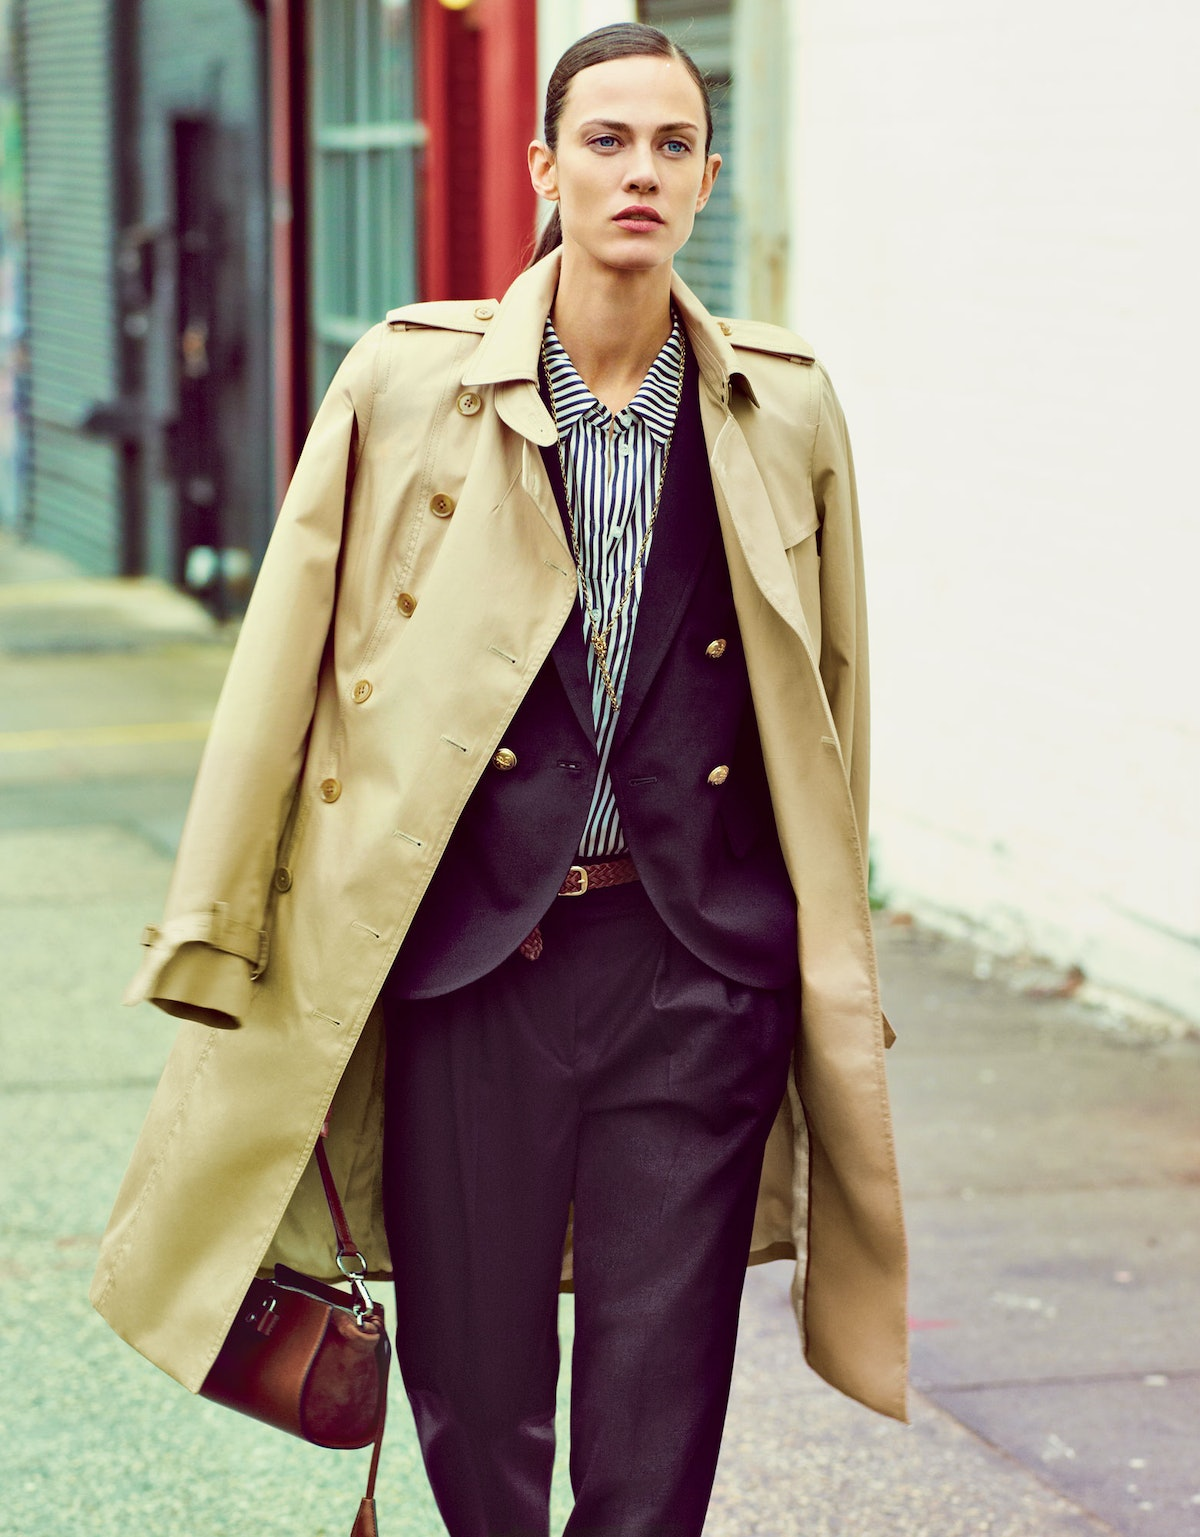 """A matched set in """"[Fast and Chic: A Guy Thing](http://www.wmagazine.com/fashion/2013/04/menswear-inspired-fast-and-chic-ss/photos),"""" shot by Emma Summerton and styled by Sarah Richardson, April 2013."""